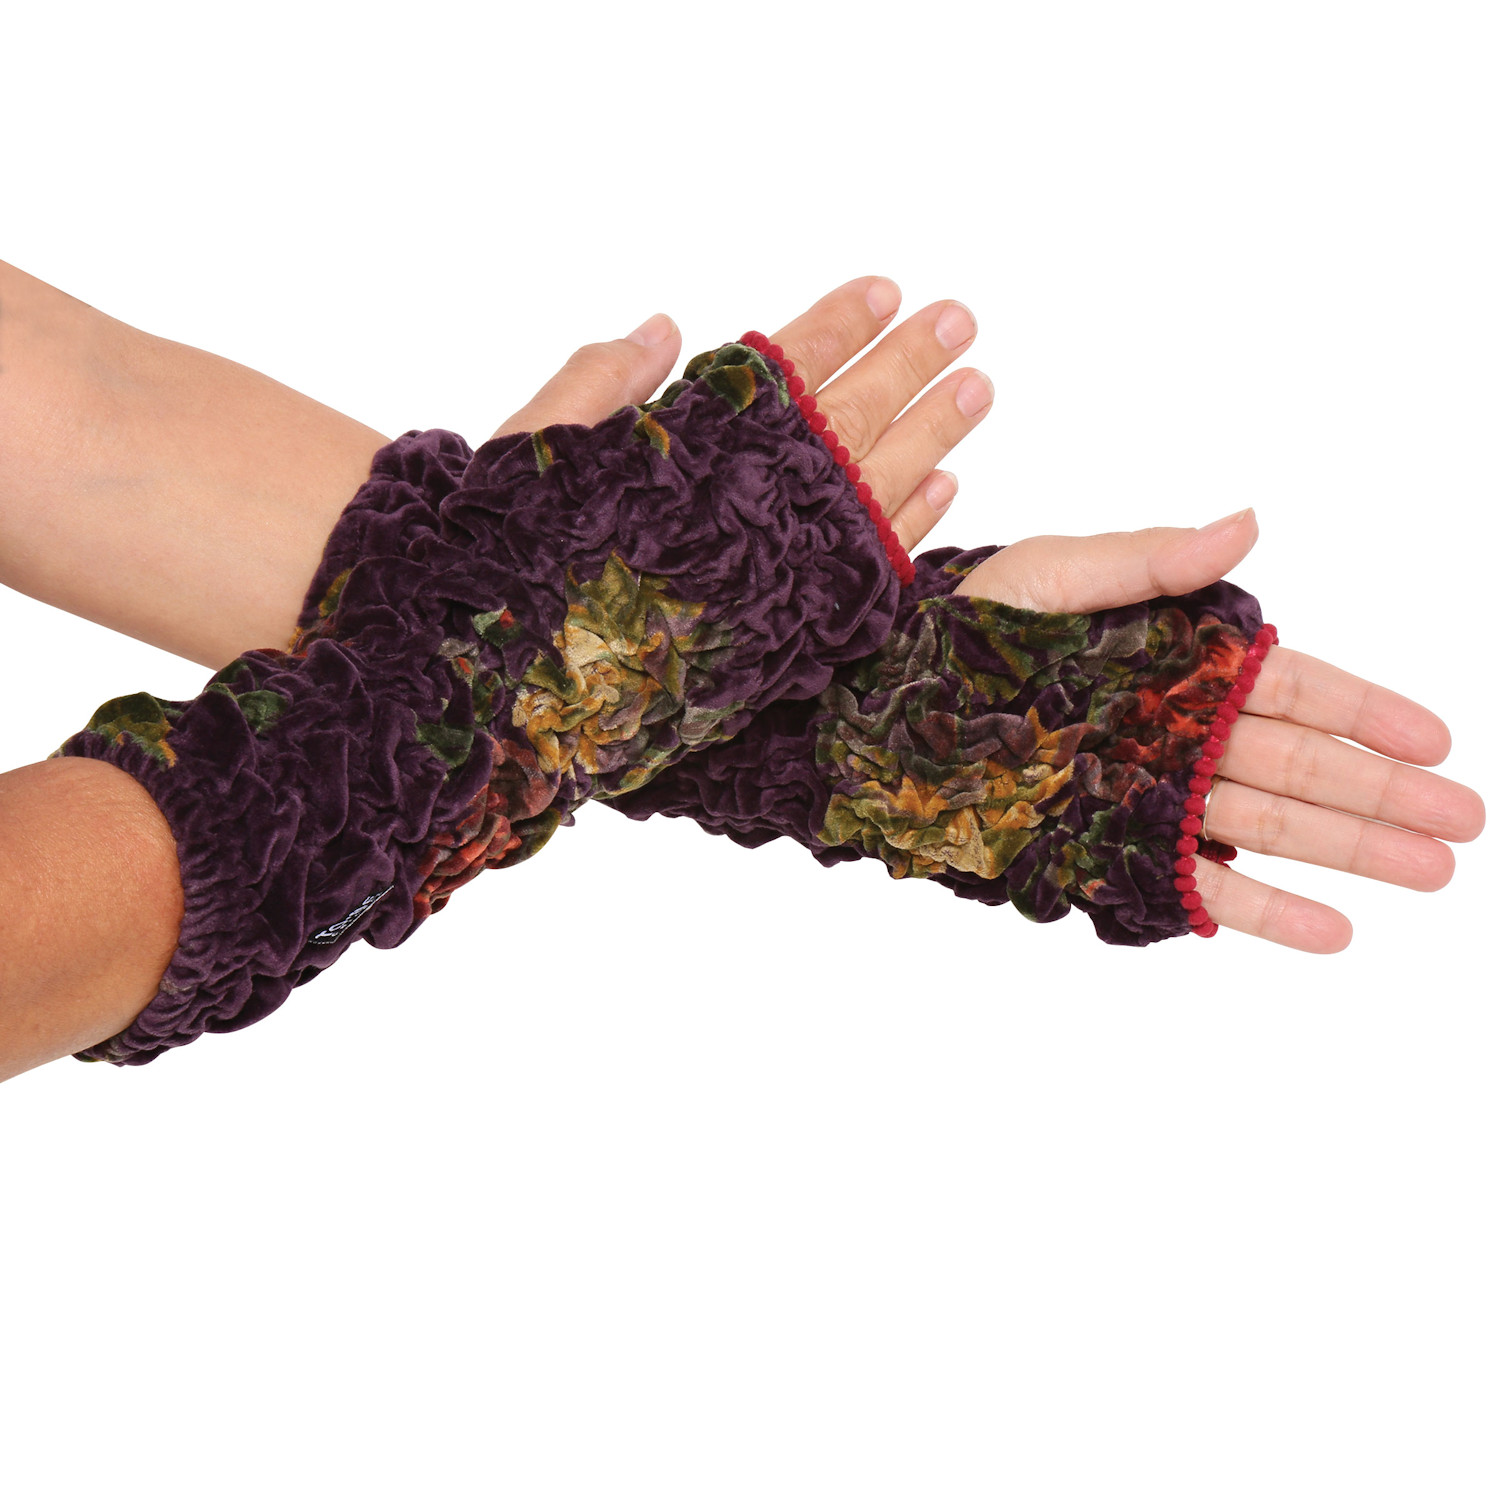 Women's Velvet Cuffs - Lush Ruched Wrist Warmers - Fingerless Gloves